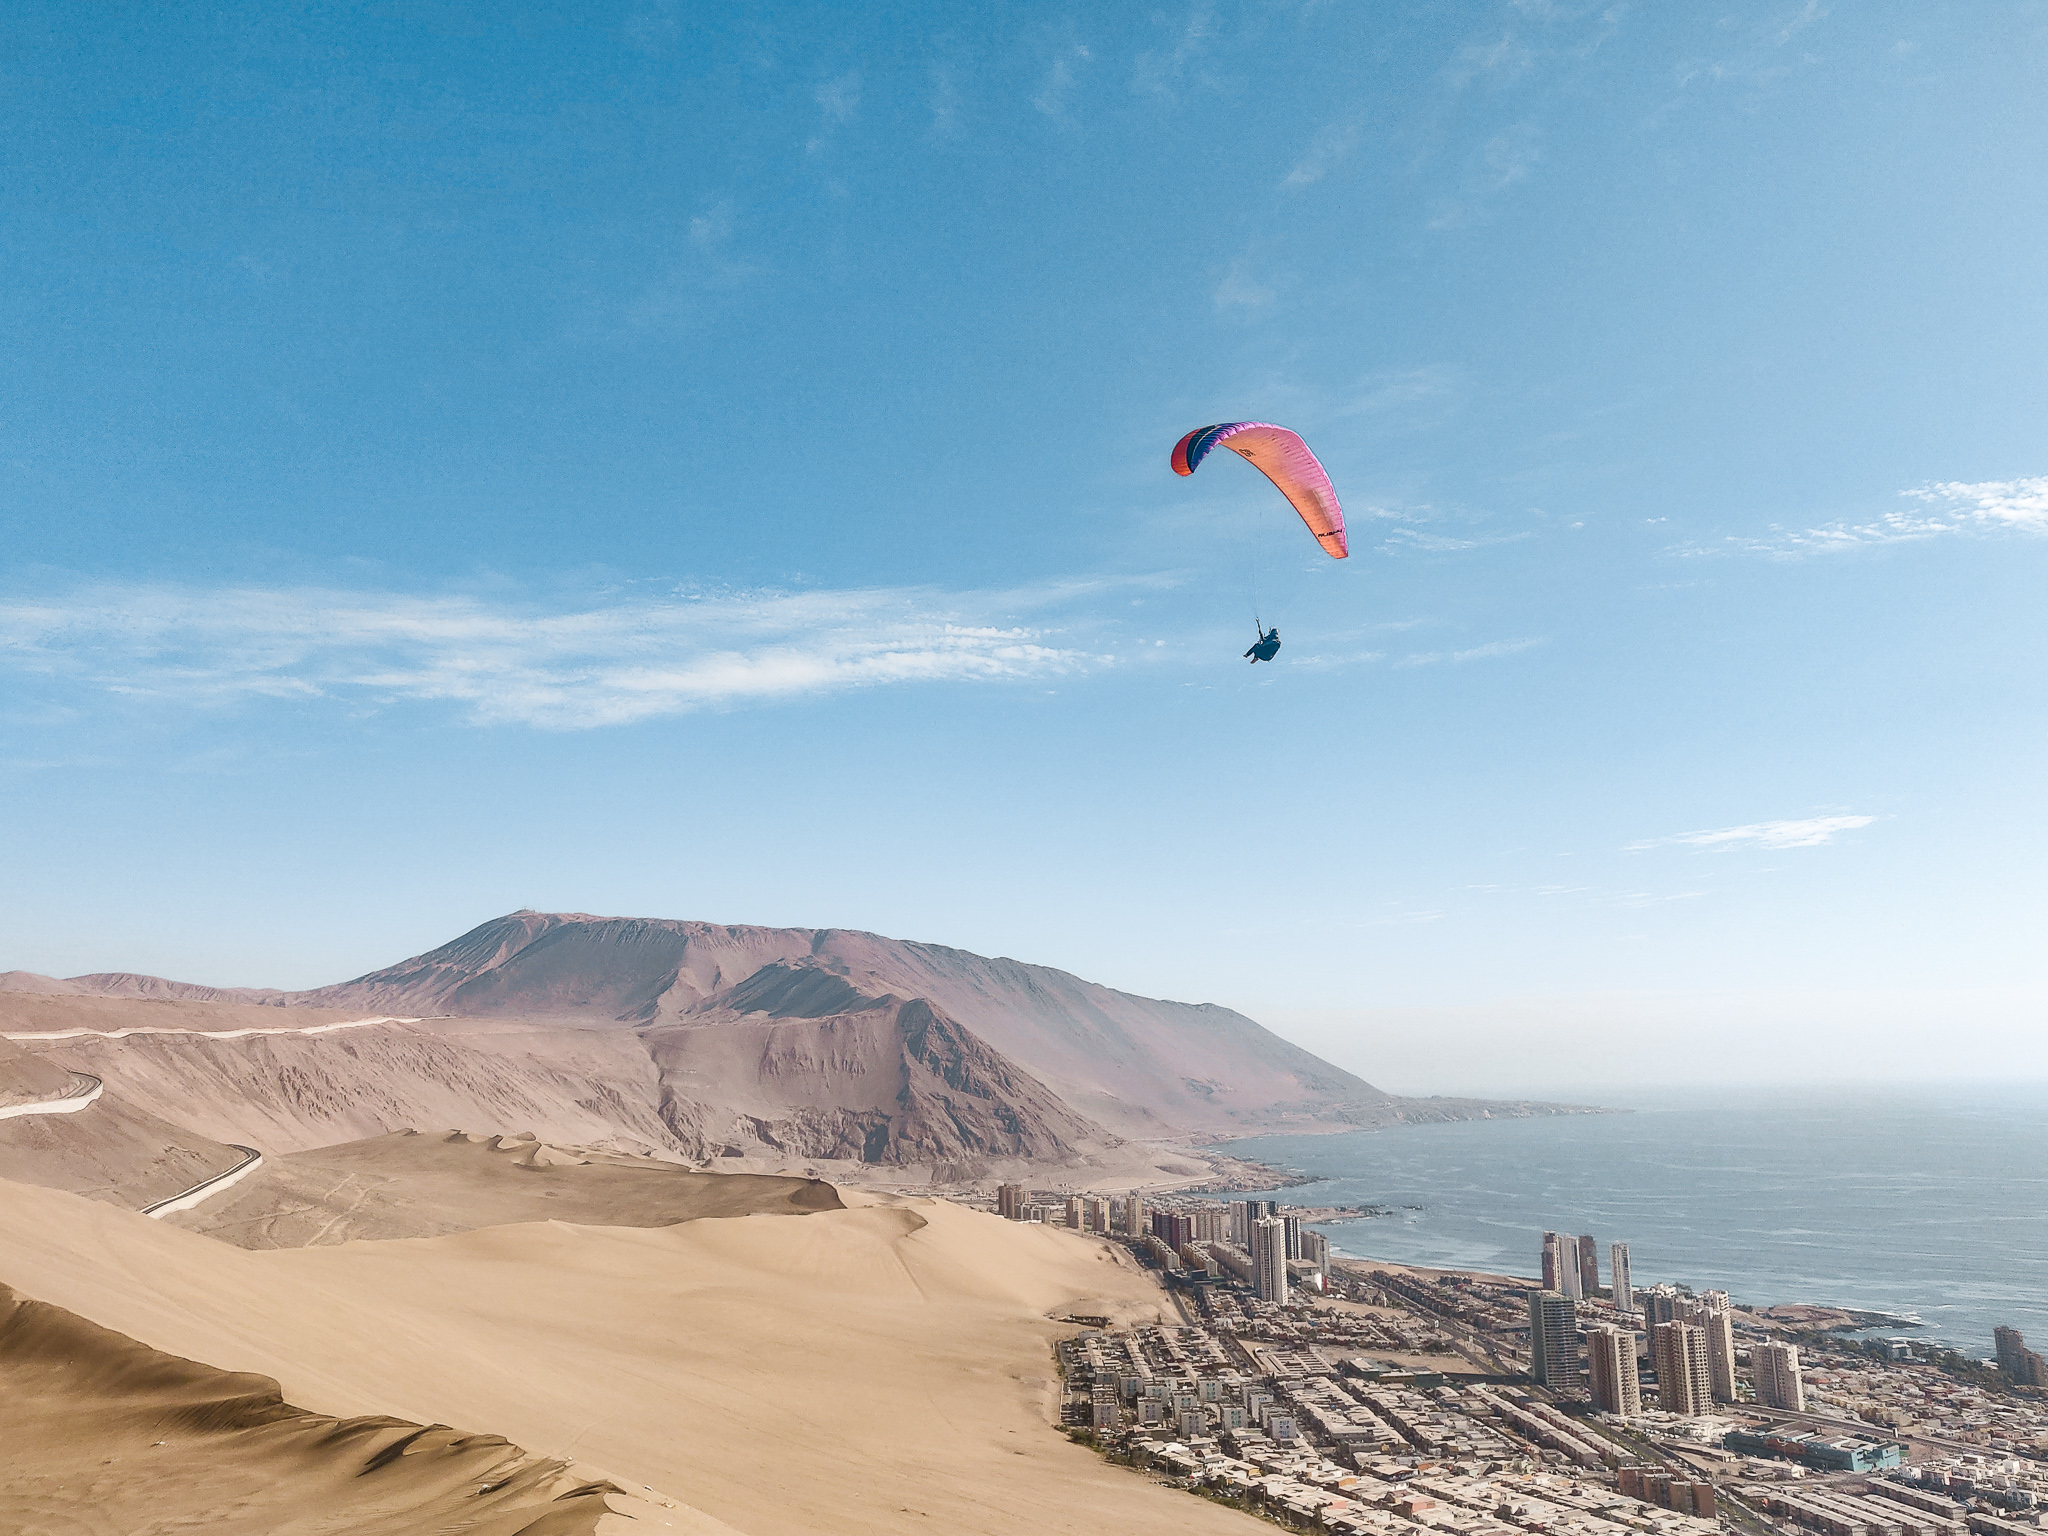 Alto Hospicio - The best XC flying for beginners and stunning views where the desert meets the ocean